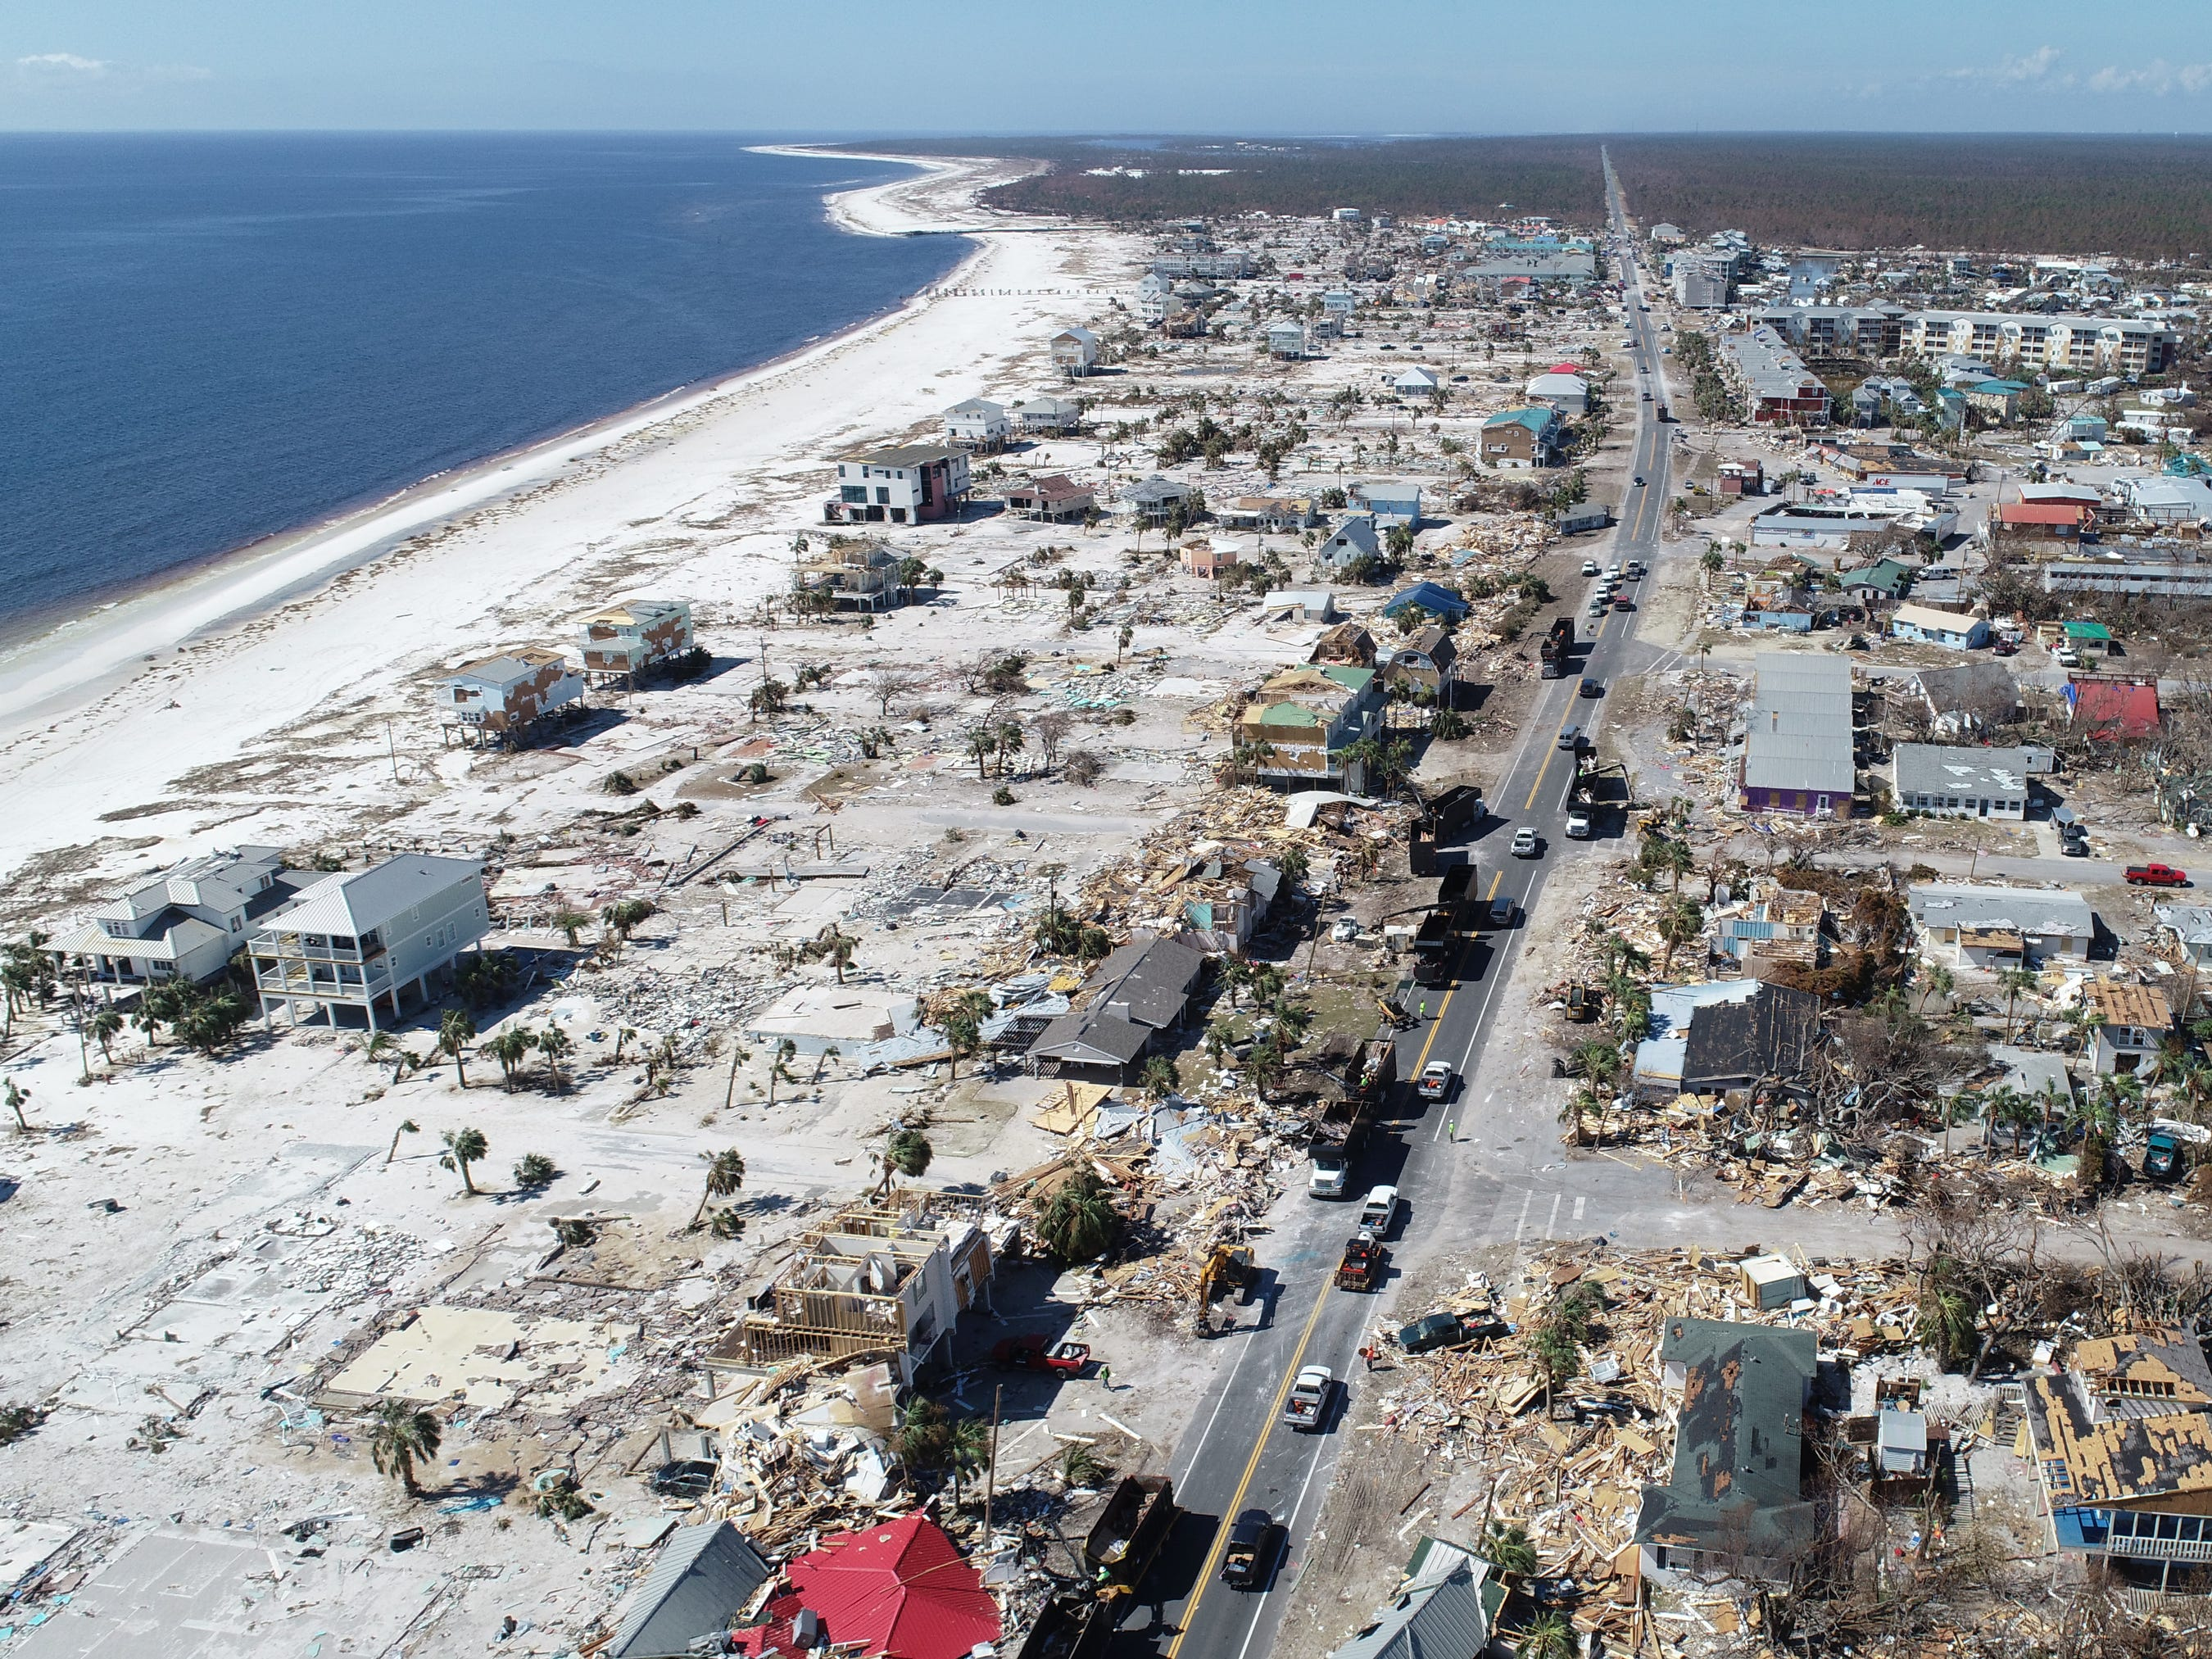 Hurricane Michael was the second costliest natural catastrophe in 2018 with $16 billion in losses. A drone image of damage left by Hurricane Michael in Mexico Beach, Fla. on Oct. 16, 2018.